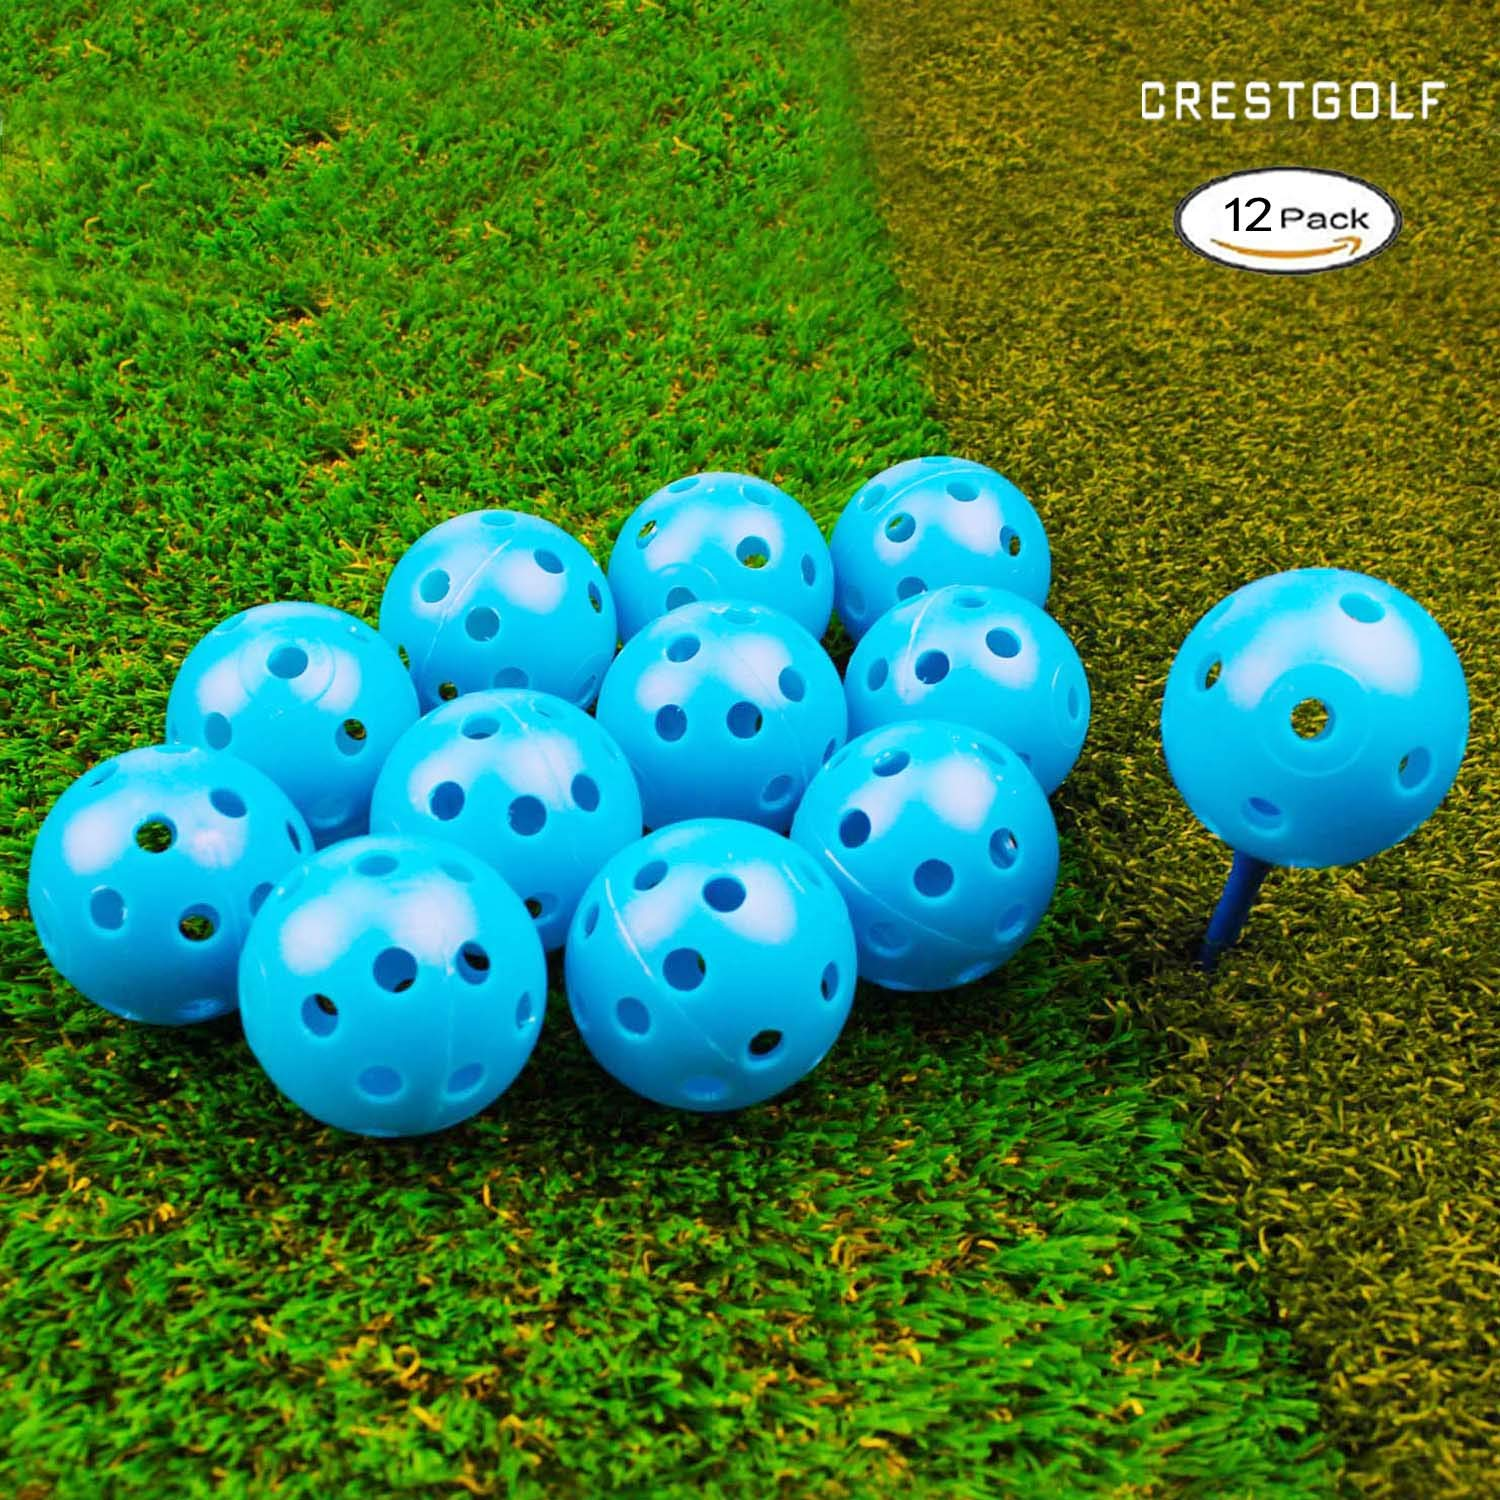 CRESTGOLF 100PCSx40mm Plastic Golf Training Balls-Airflow Hollow Golf Balls For Driving Range,Swing Practice,Home Use,Pet Play